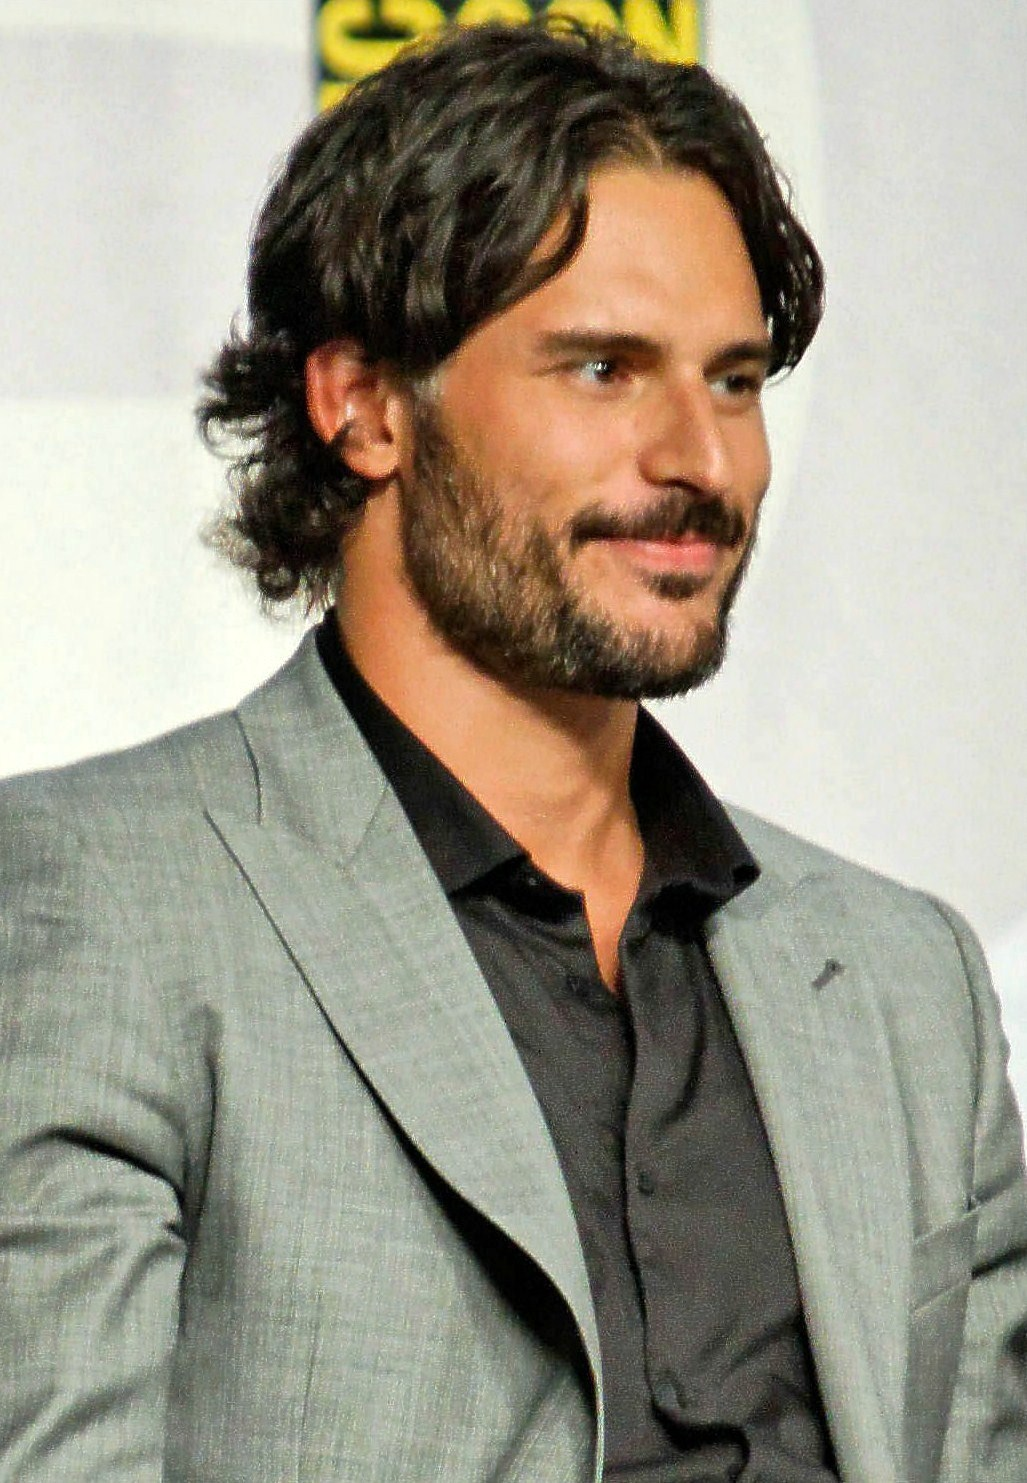 File:Joe Manganiello cropped.jpg - Wikipedia